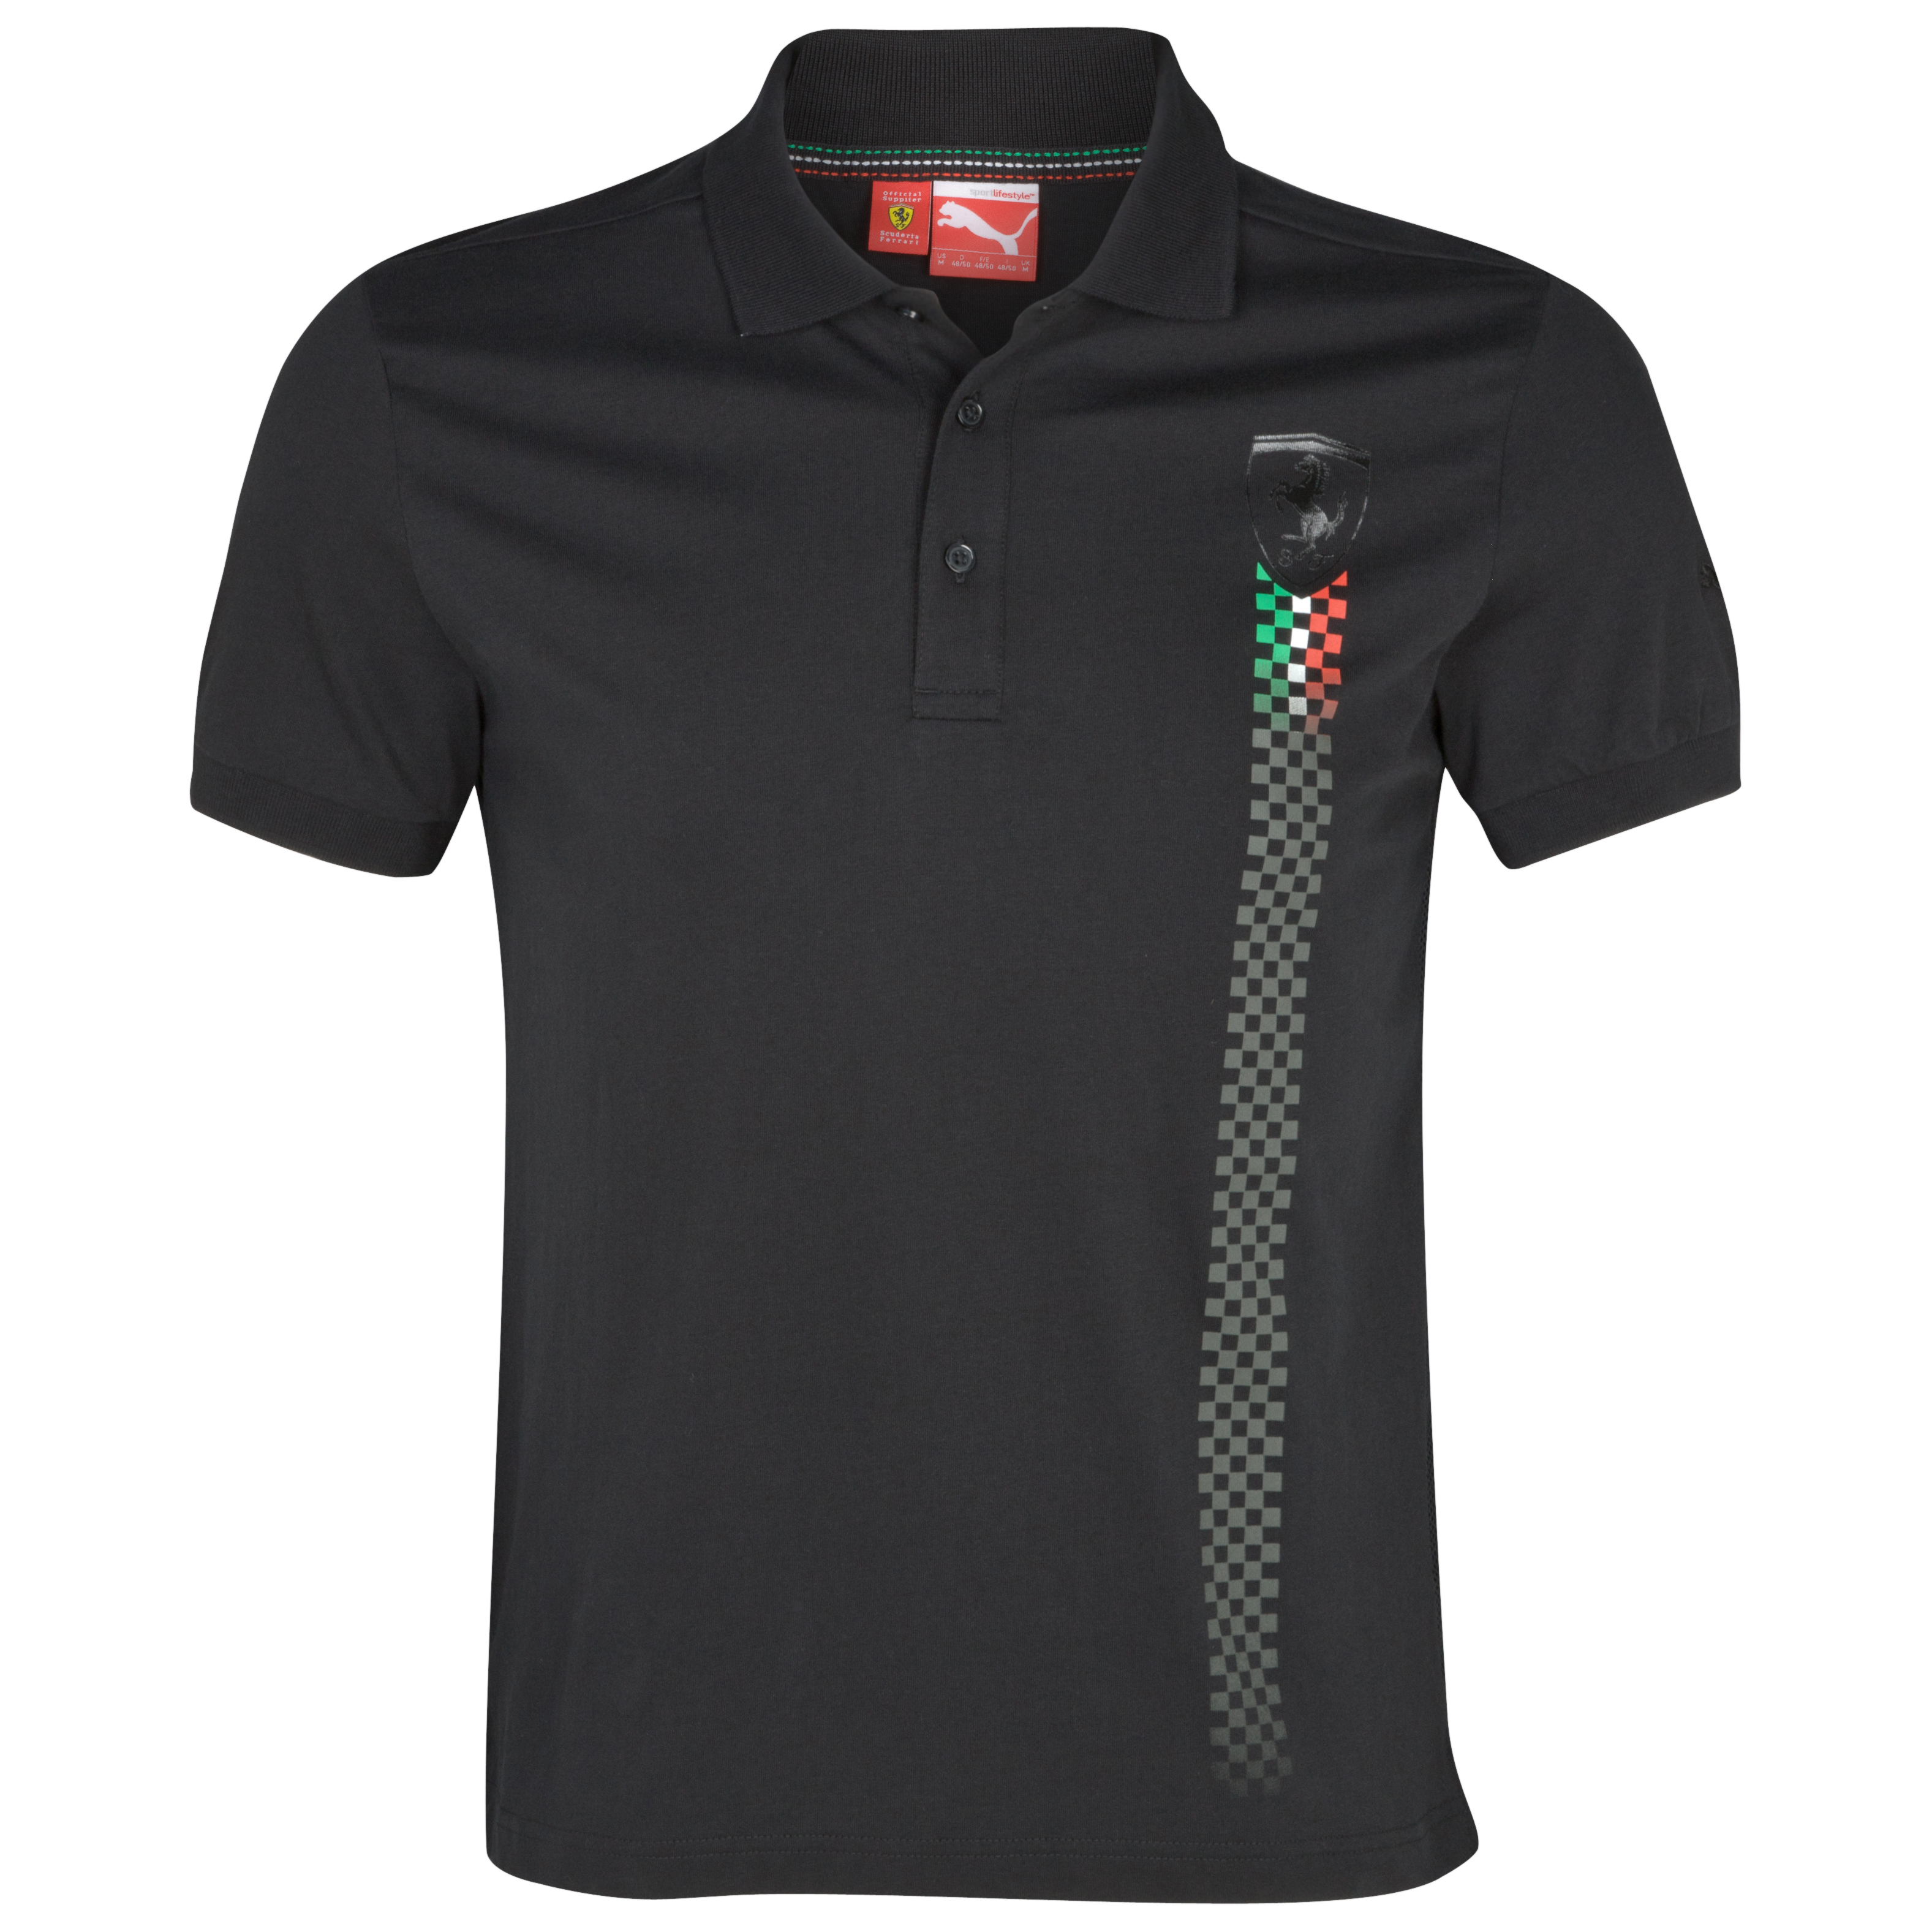 Scuderia Ferrari 2012 Polo Shirt - Black